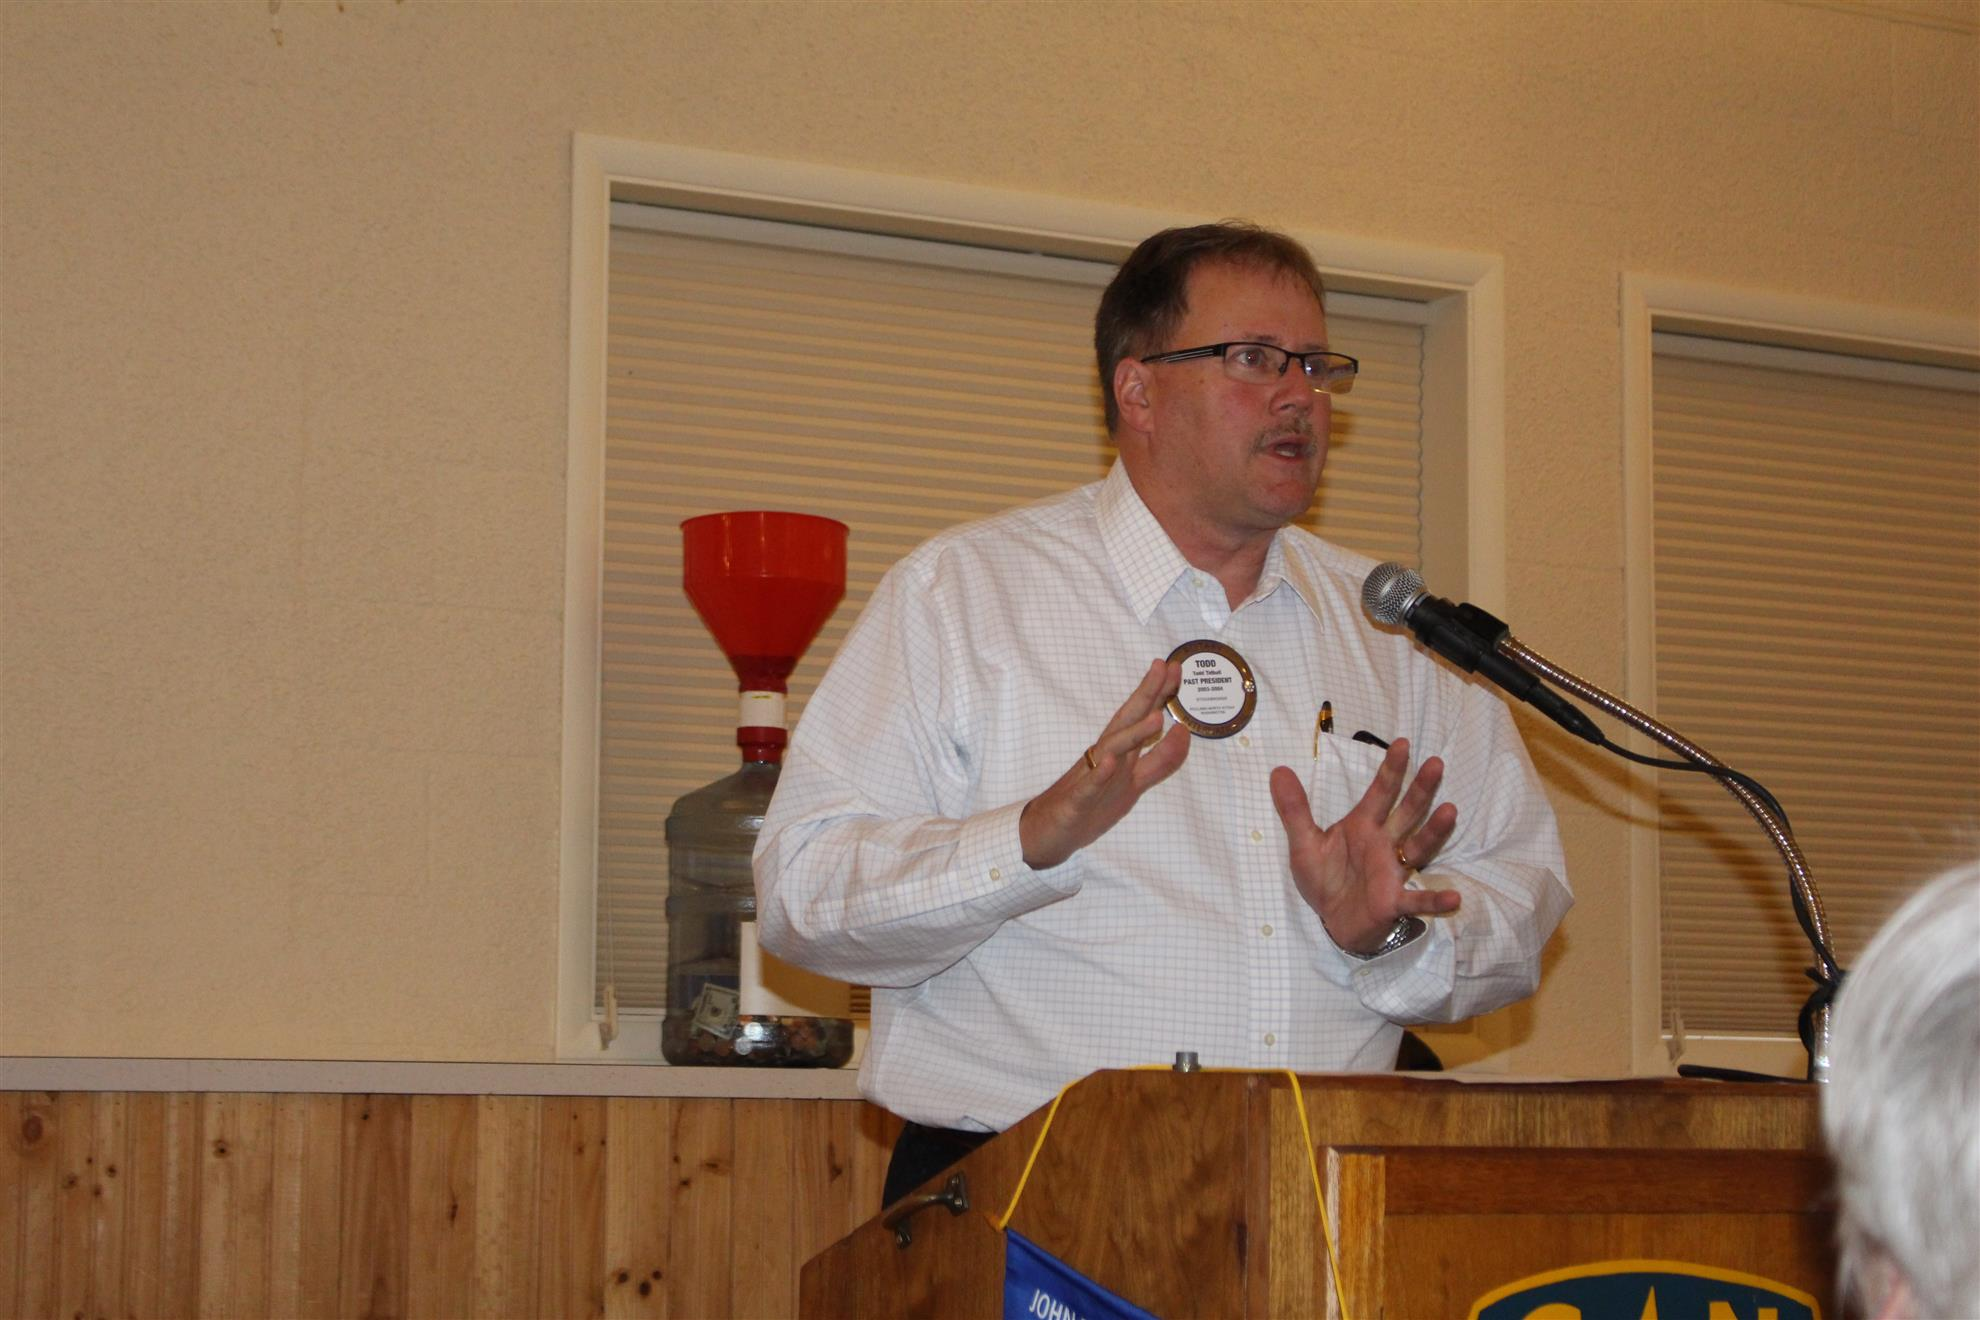 Fundraising for Poulsbo Rotary: A Discussion let by Todd Tidball